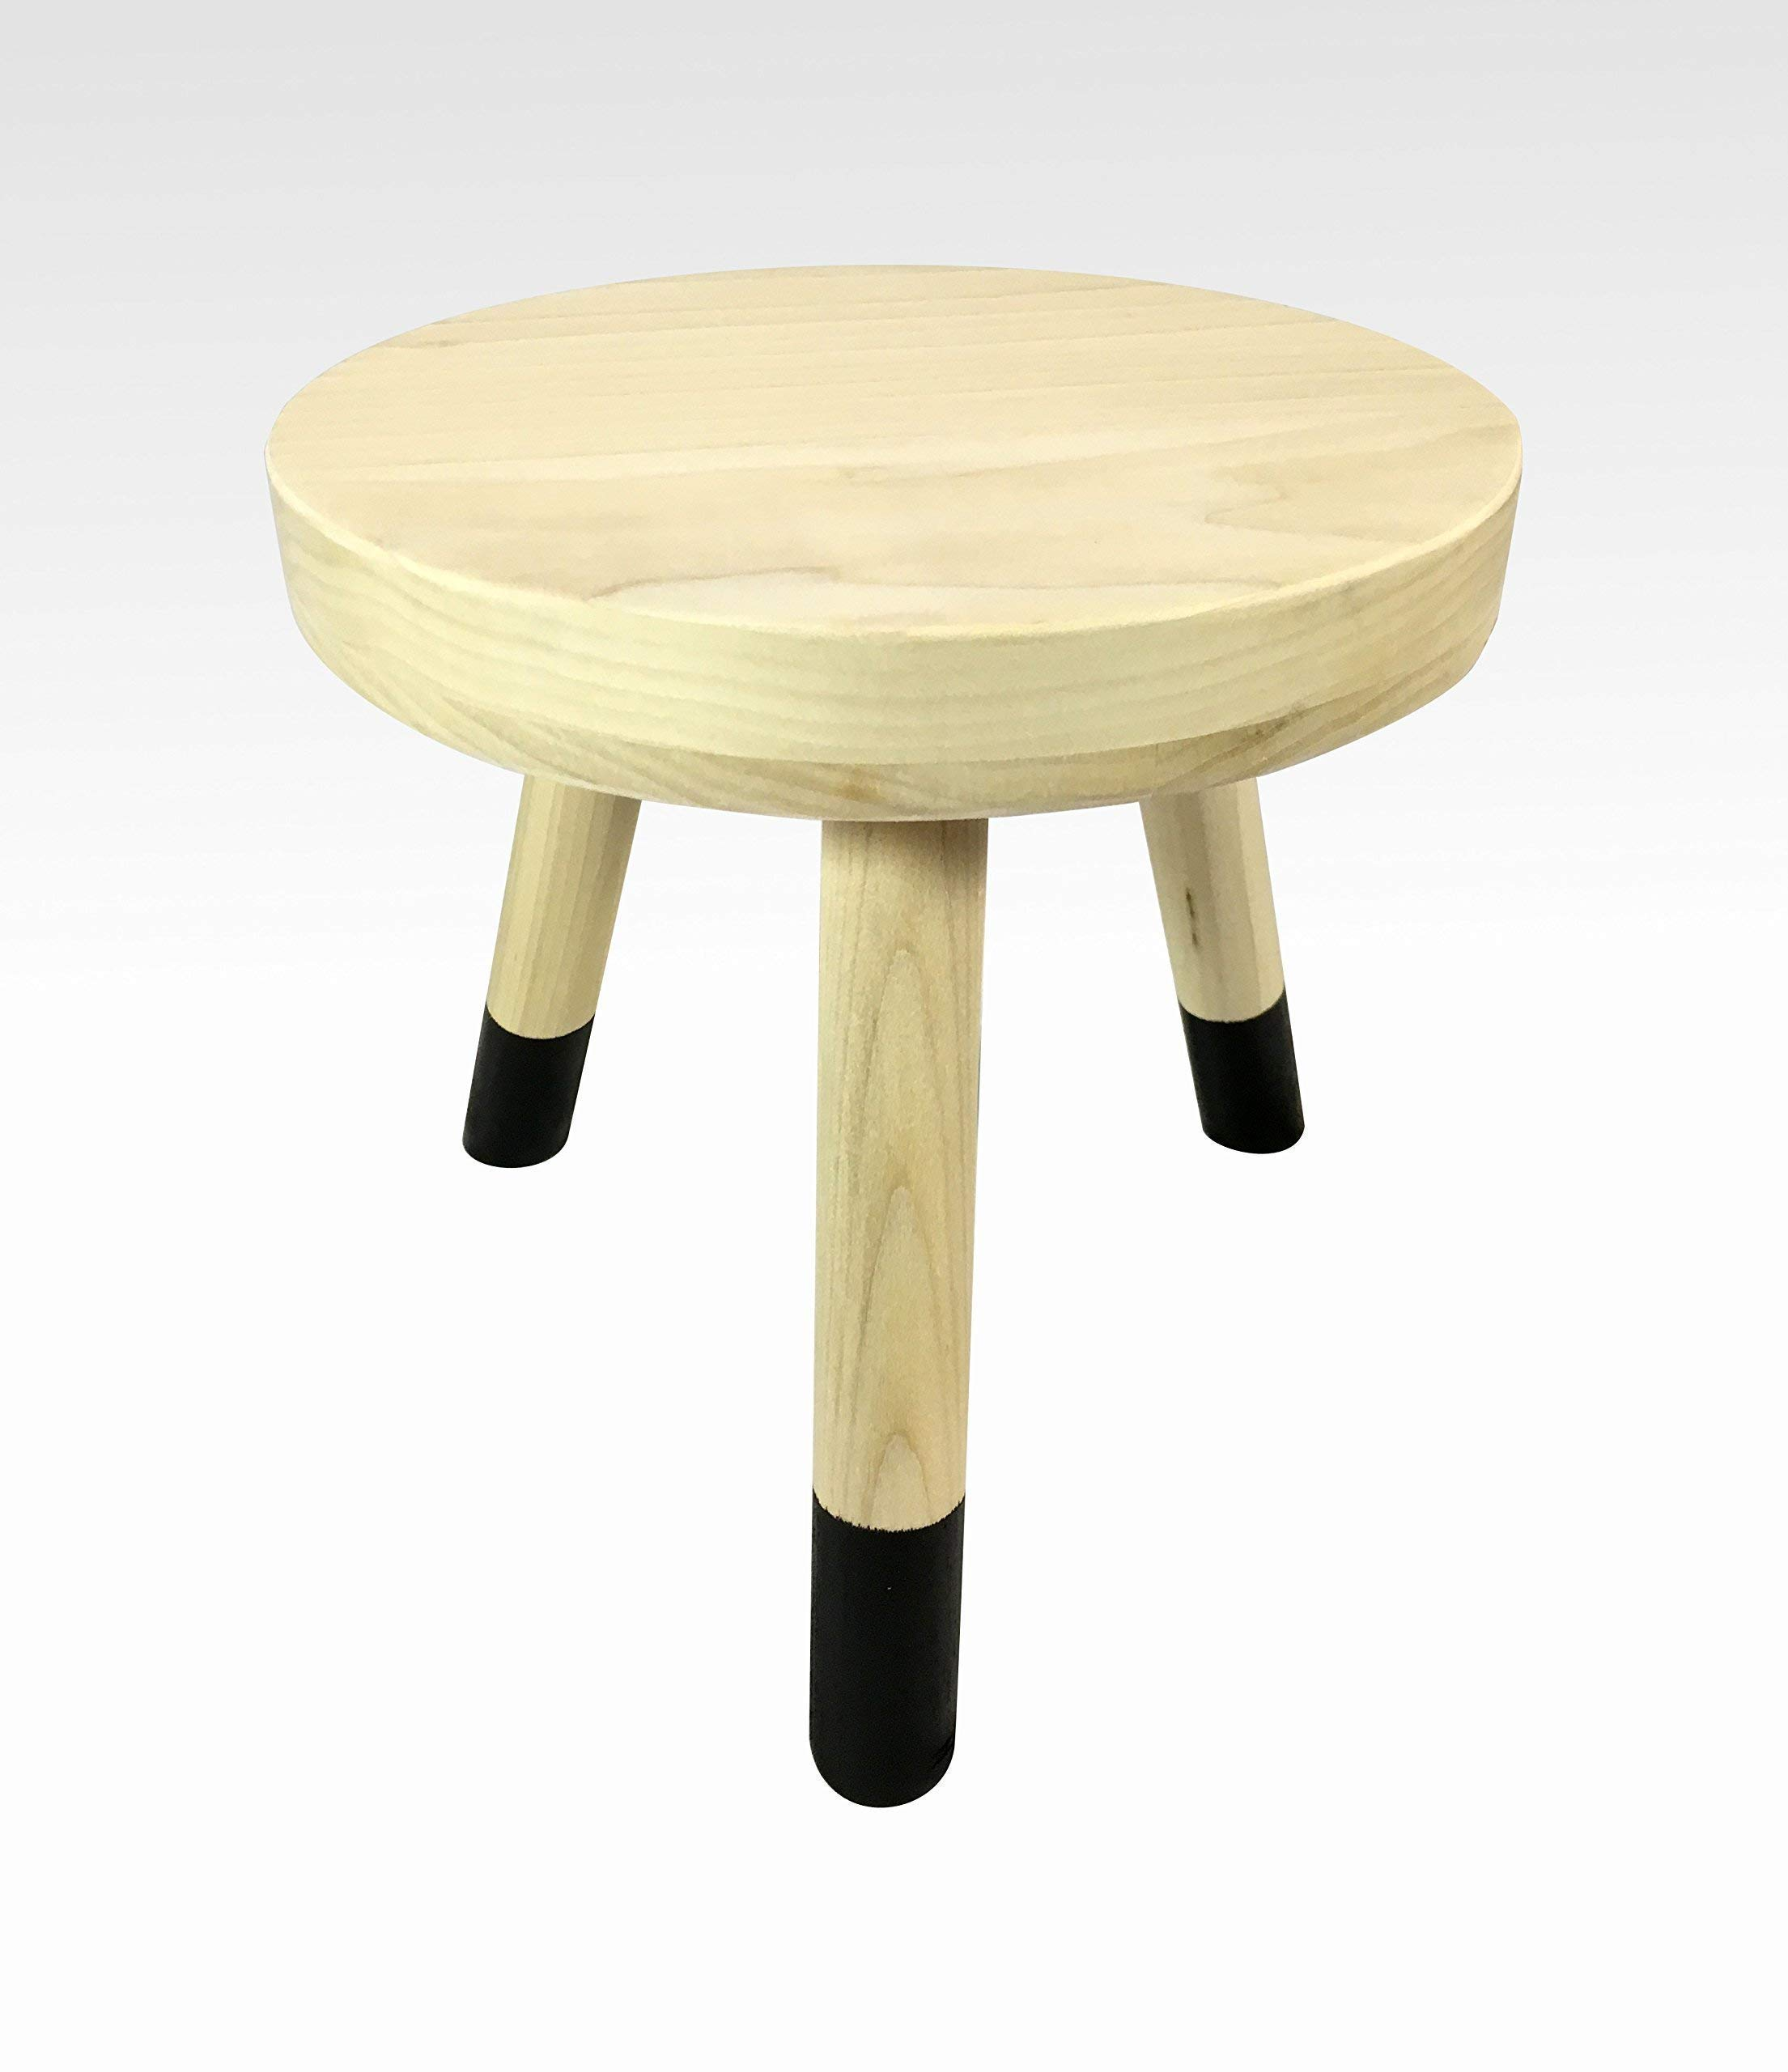 Modern Plant Stand Three Leg Stool by CW Furniture in Pale and Black Indoor Wood Flower Pot Base Display Holder Solid Wooden Kids Chair Table Simple Minimalist Small by Candlewood Furniture